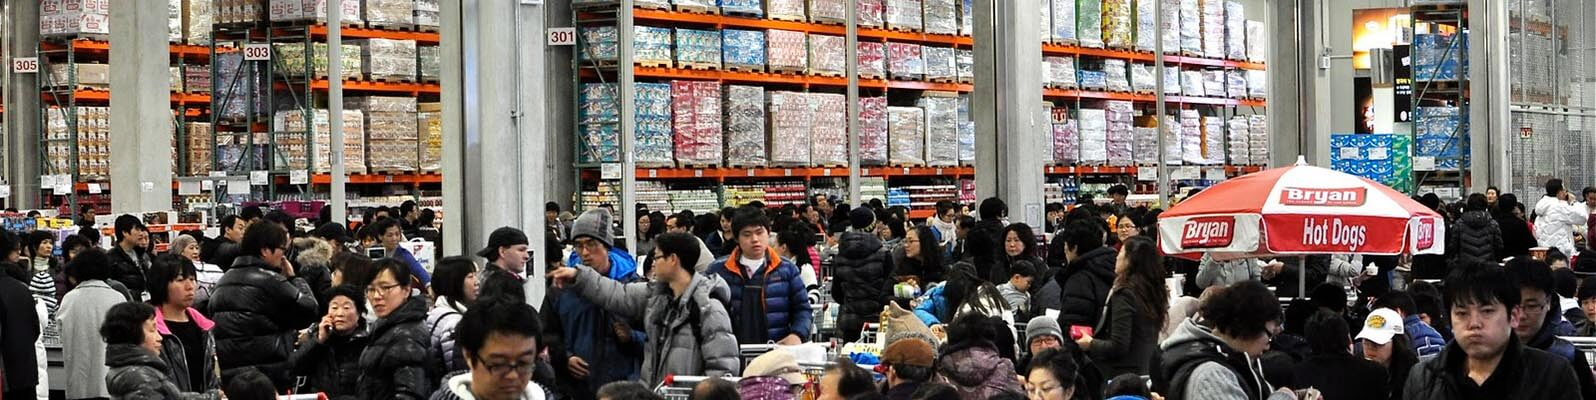 distressed shoppers at a costco in korea